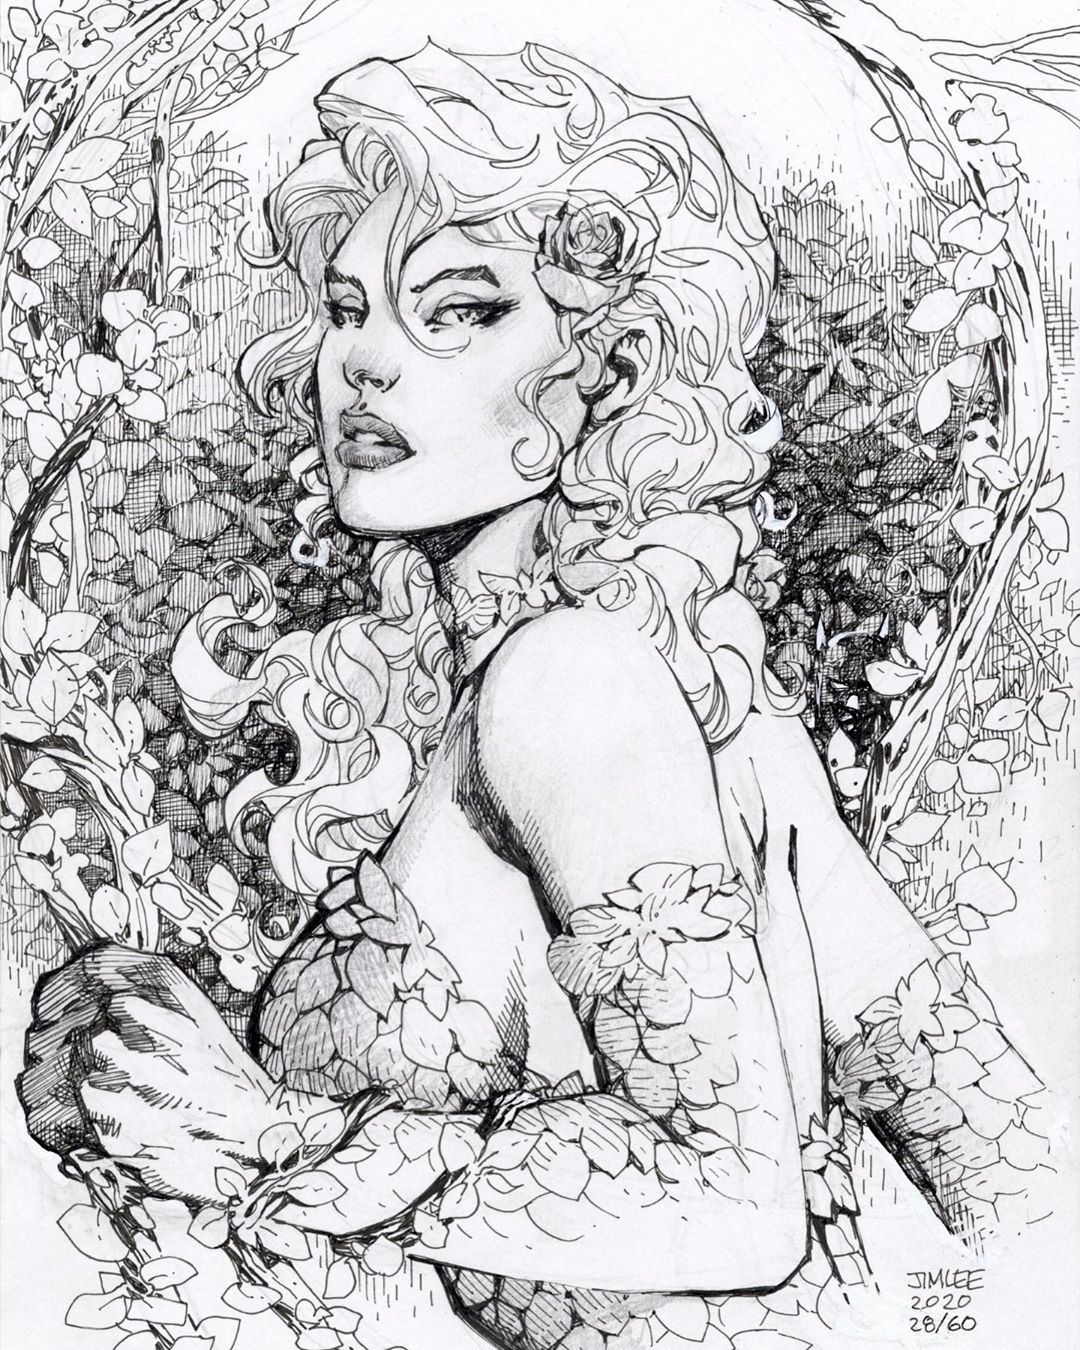 "Jim Lee on Instagram: ""Day 28 (late) brings us POISON IVY (drawn by me) as chosen by the high bidder on Cyborg @waxripper! Pen and ink and whiteout on 9×12""…"" Jim Lee on Instagram: ""Day 28 (late) brings us POISON IVY (drawn by me) as chosen by the high bidder on Cyborg @waxripper! Pen and ink and whiteout on 9×12""…"""